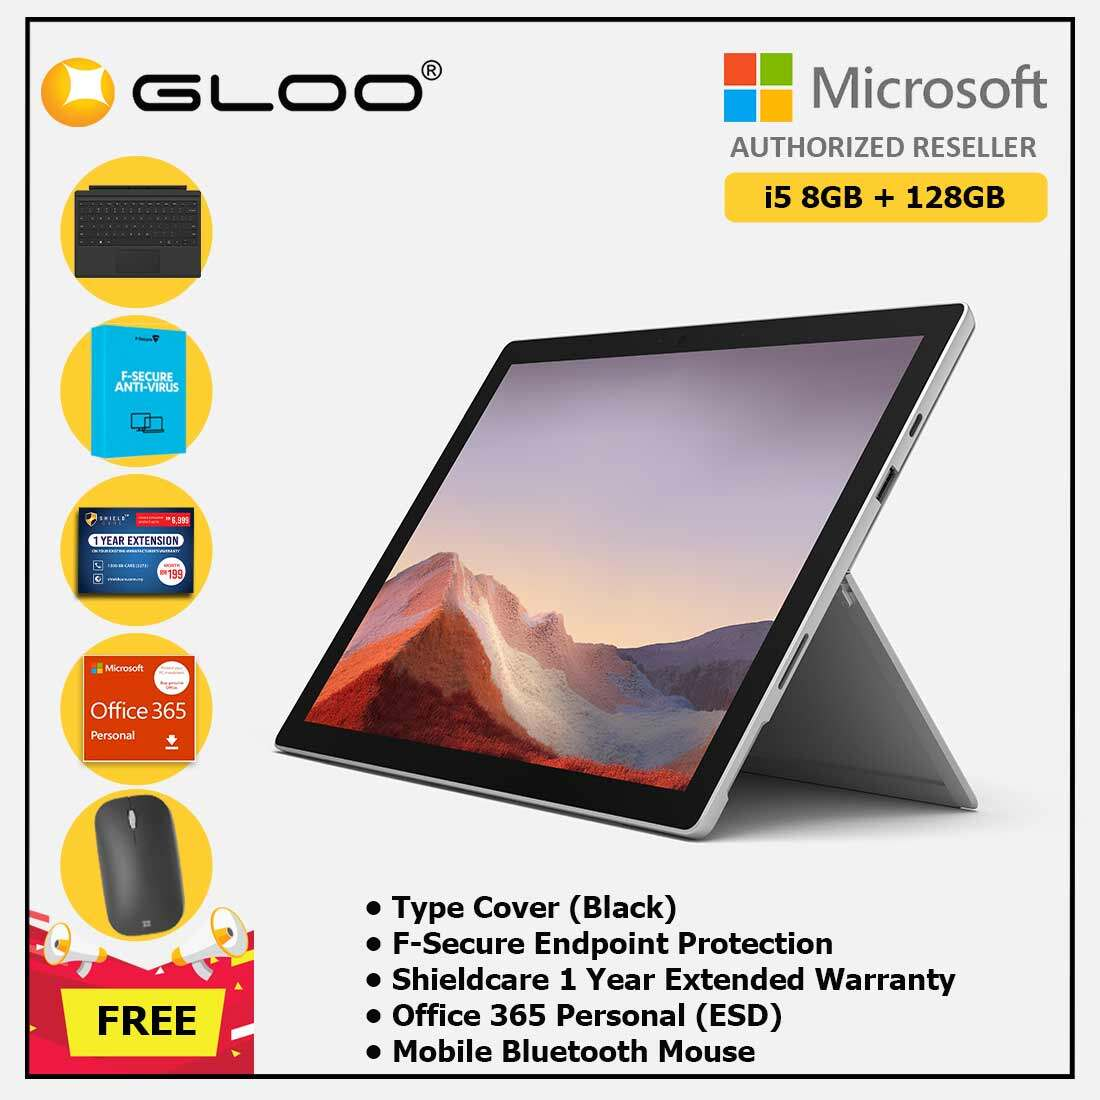 Microsoft Surface Pro 7 Core i5/8G RAM - 128GB Platinum - VDV-00012 + Surface Pro Type Cover Black + Shield Care 1 Year + F-Secure 1 Year + Office 365 Personal (ESD) + Mobile Mouse Bluetooth Black[FOC RM100 Aeon Voucher 21/3/2020 - 31/3/2020] Malaysia